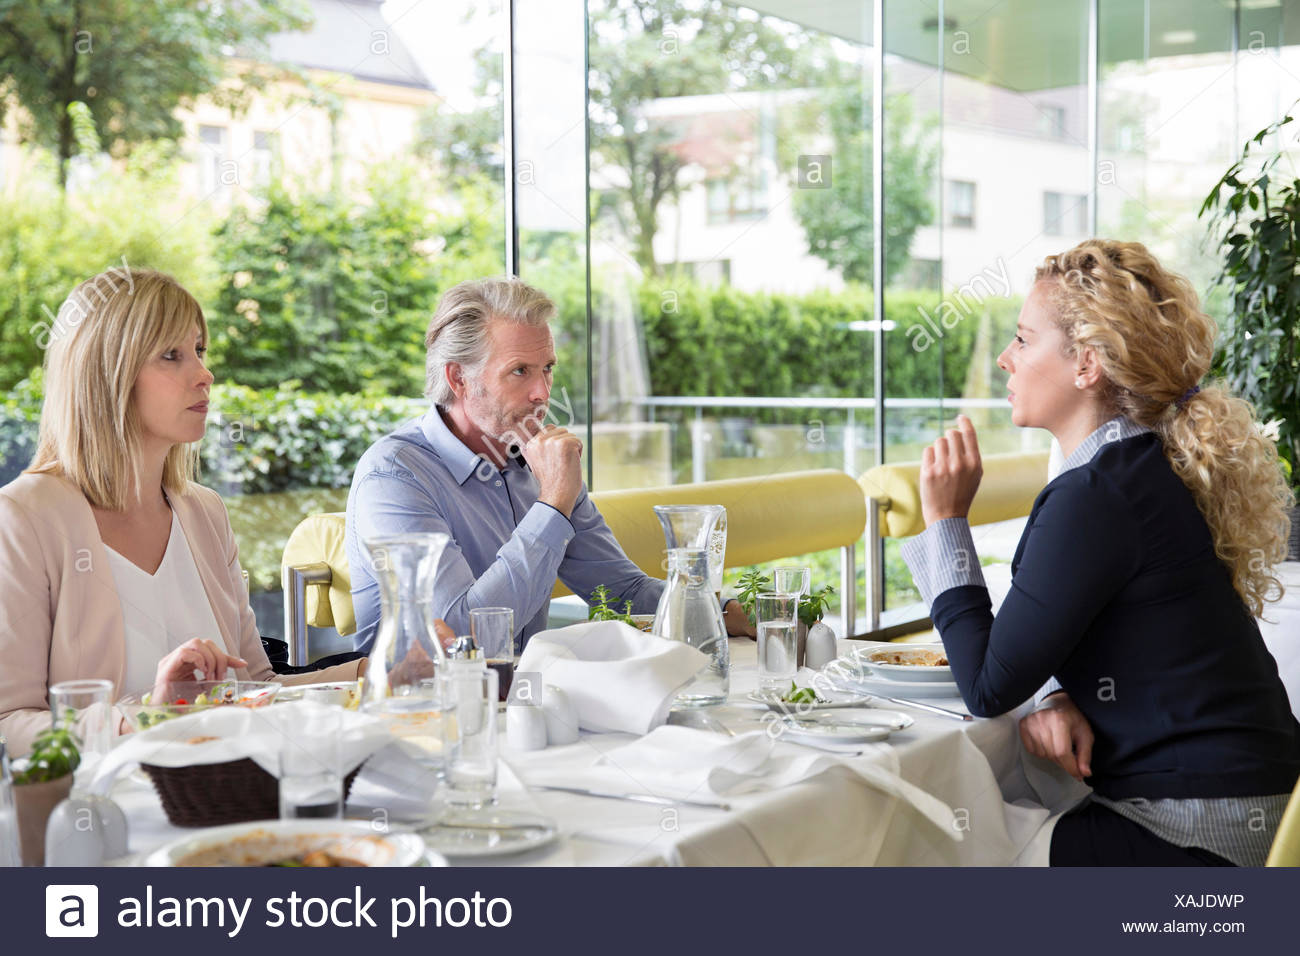 Family al fresco dining at restaurant - Stock Image